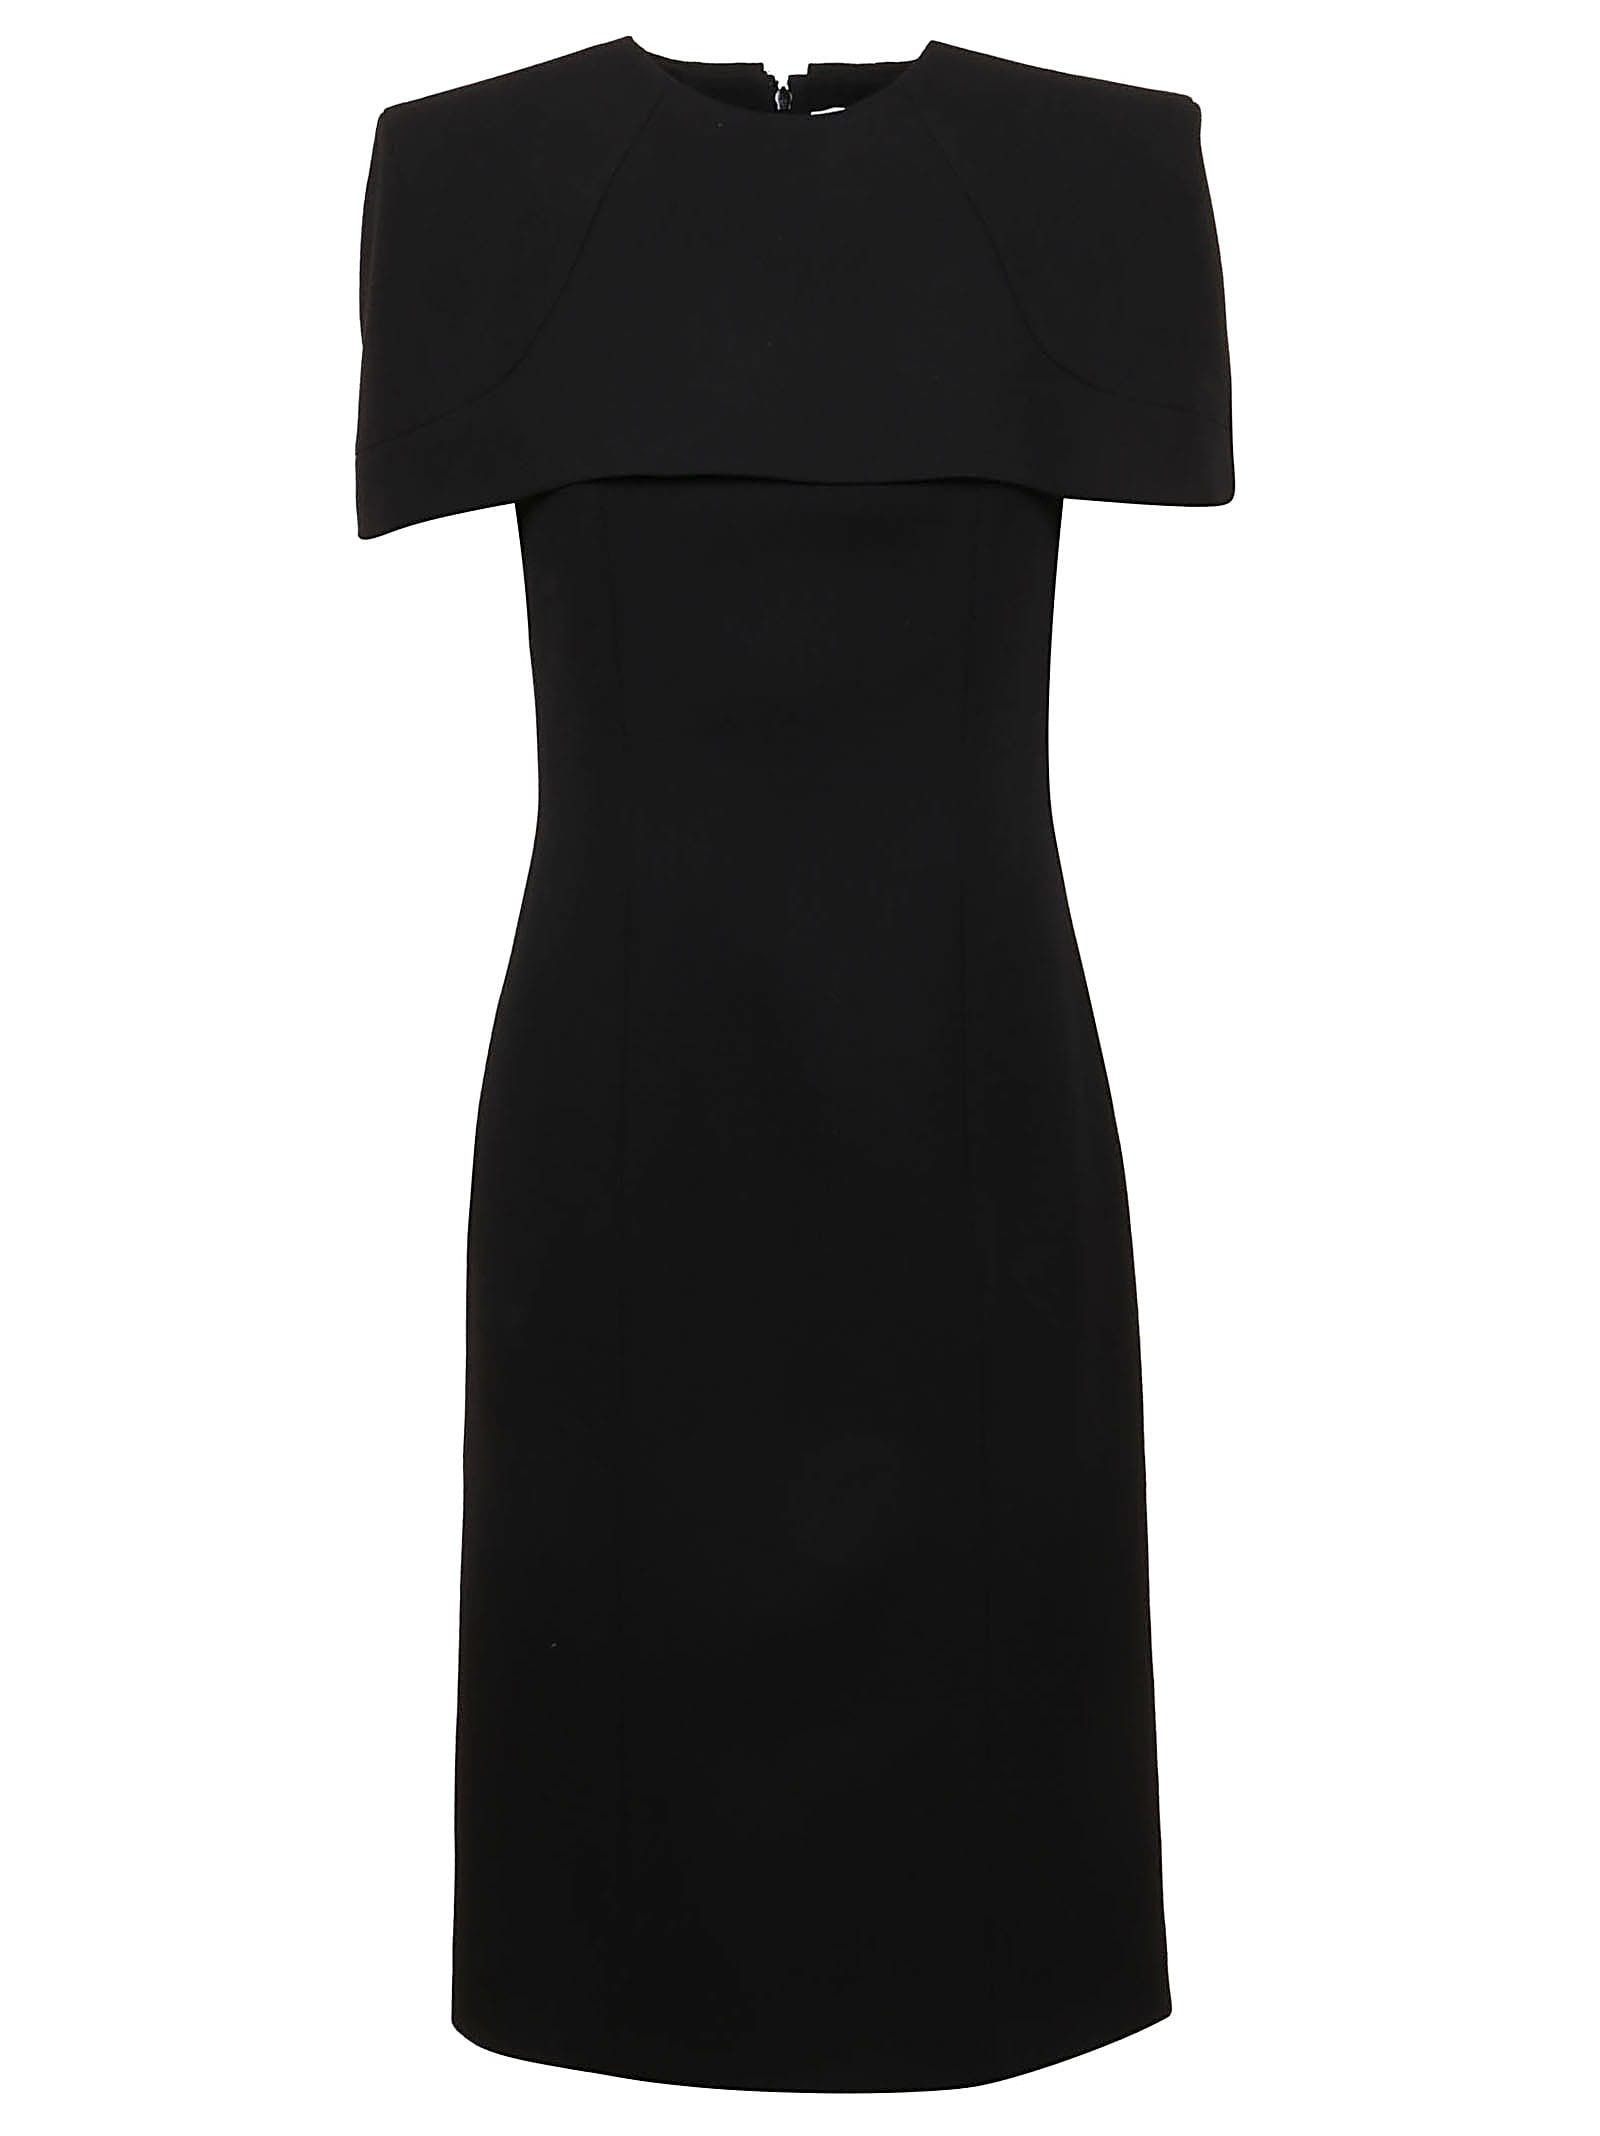 Buy Givenchy Dress With Cape online, shop Givenchy with free shipping